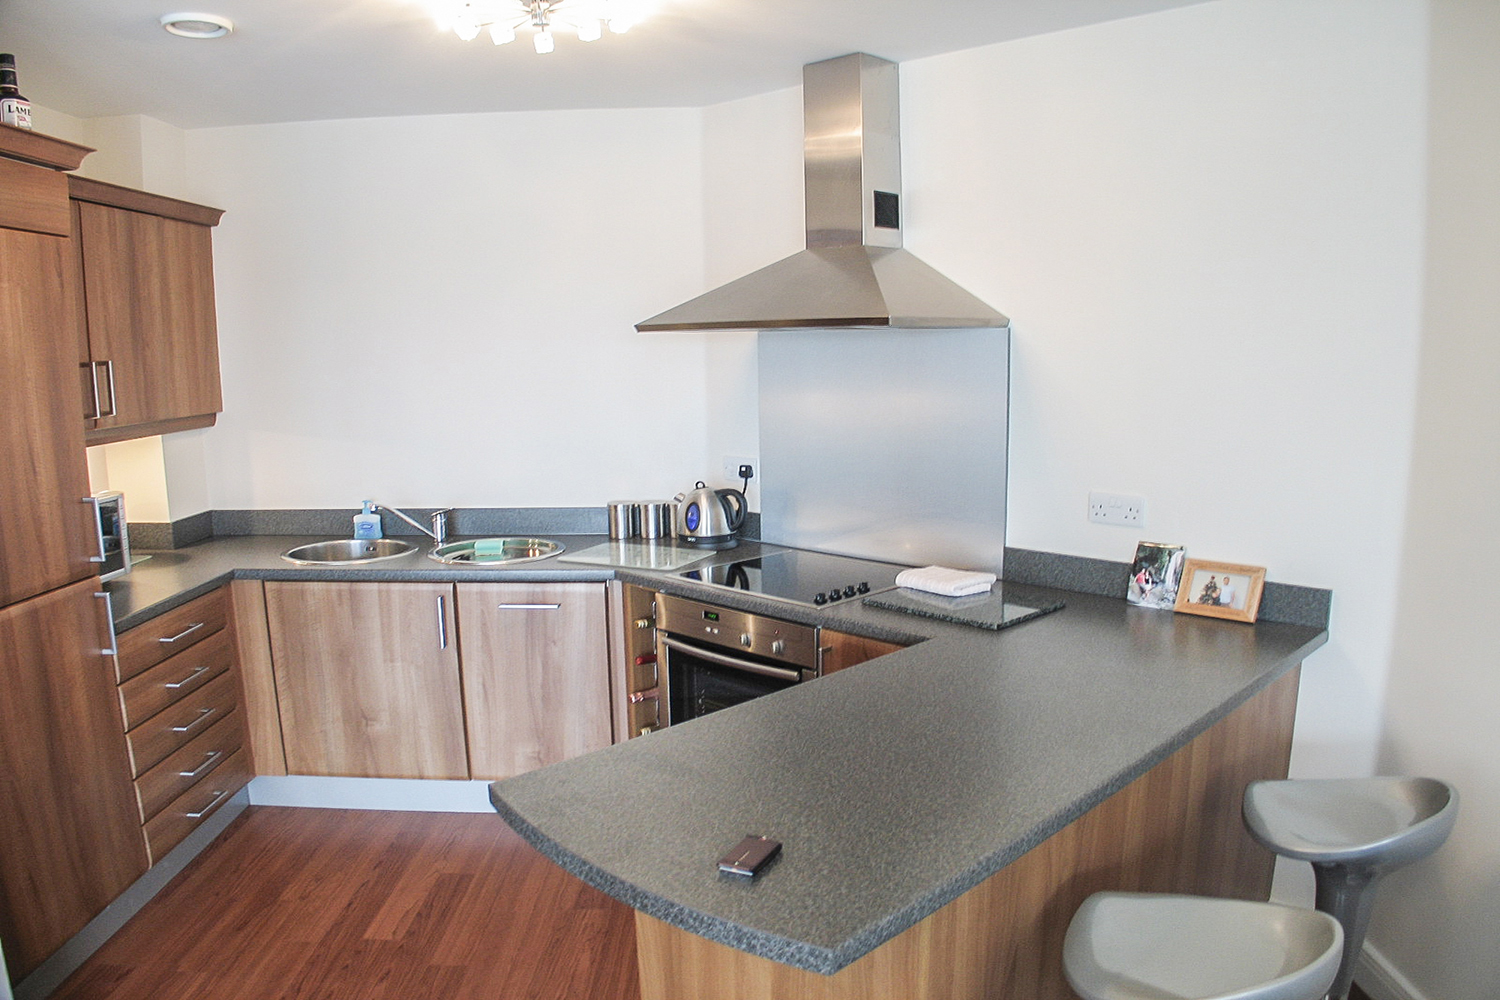 3 70 cameronian square kitchen - Sanderson Young